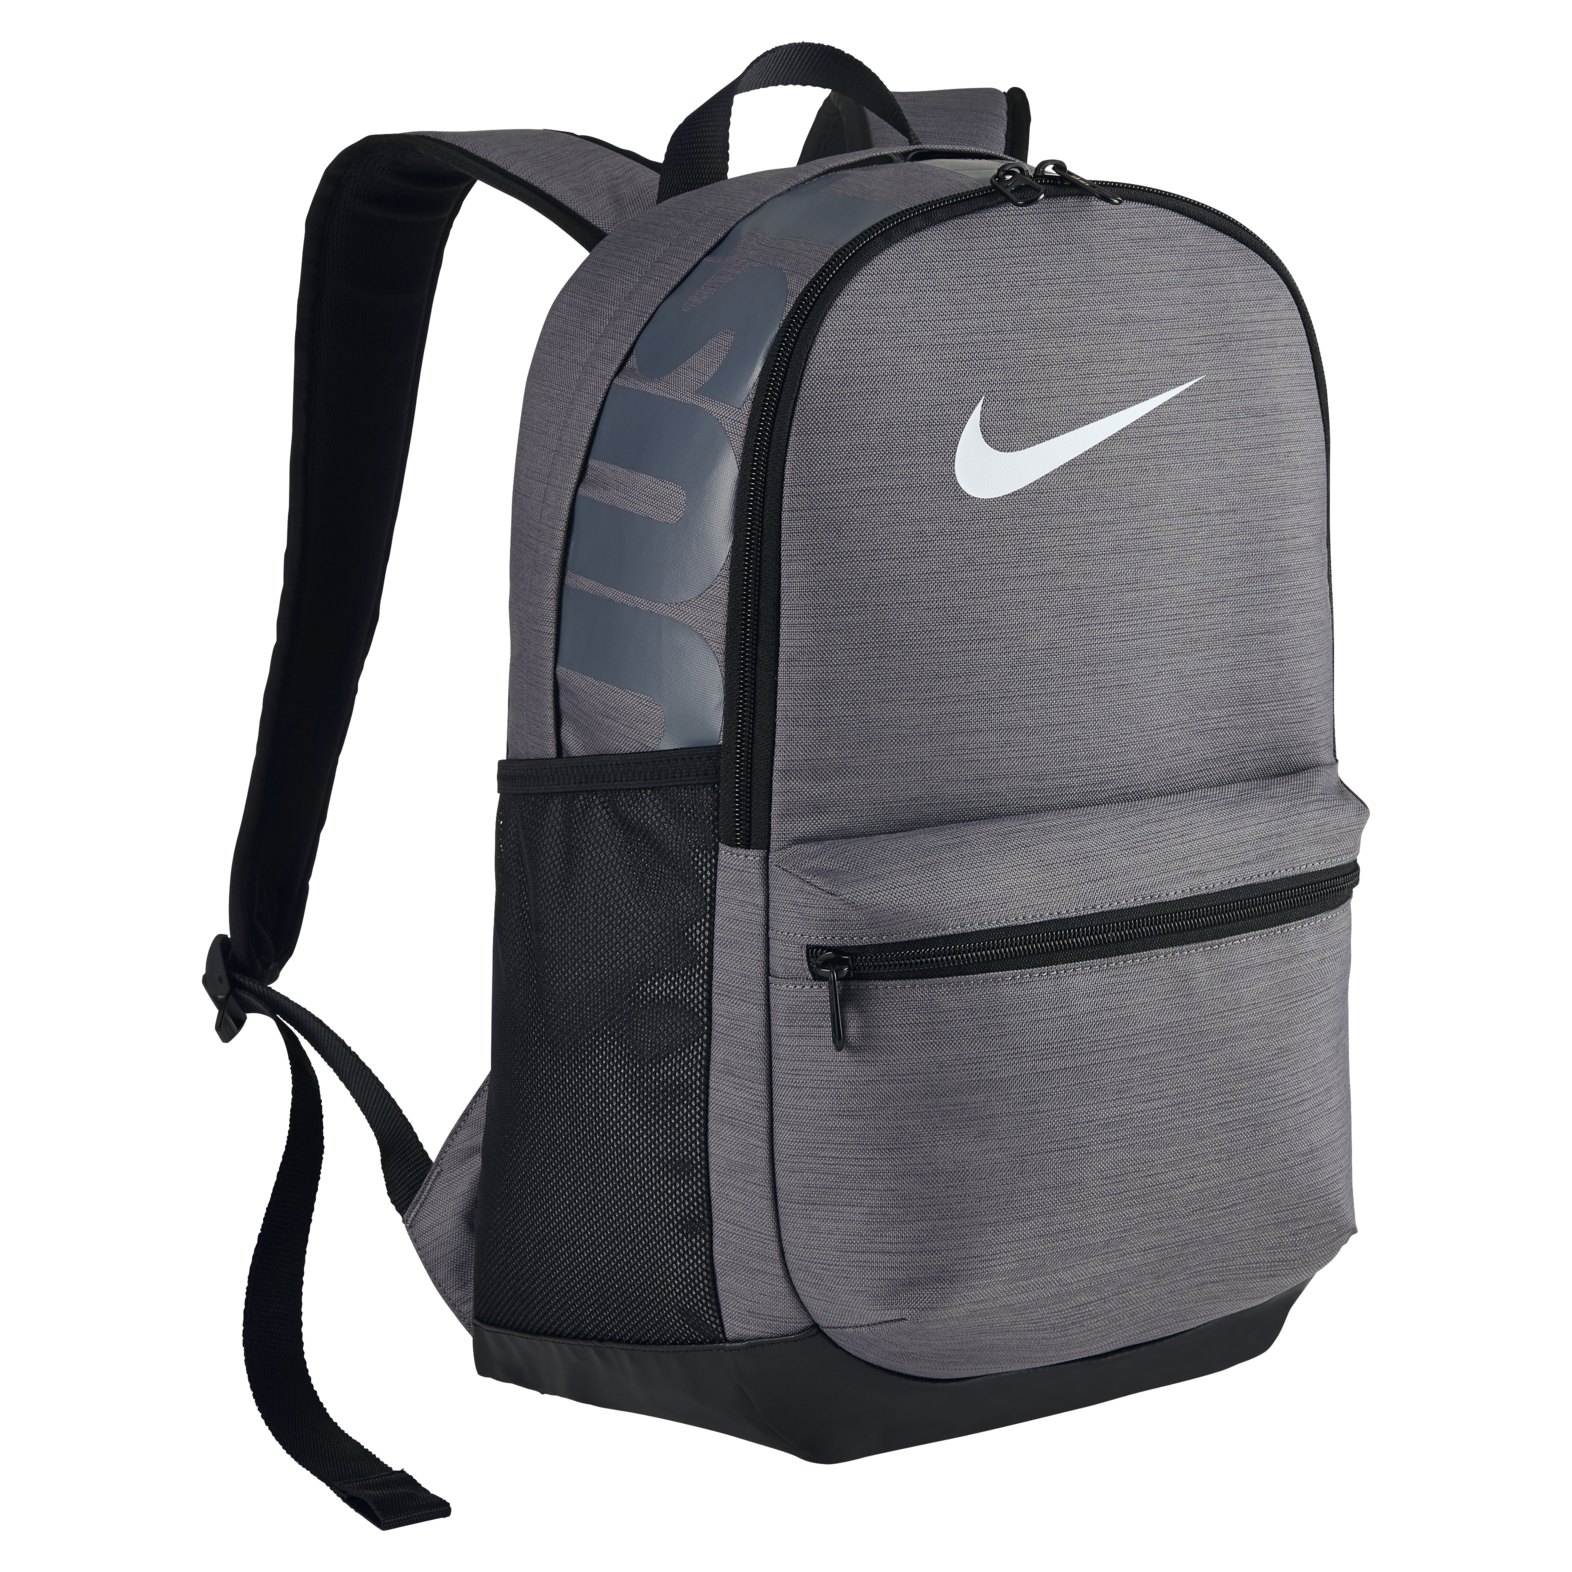 8000a8129 NIKE BRASILIA MEDIUM BACKPACK BAG - Poobie Naidoos